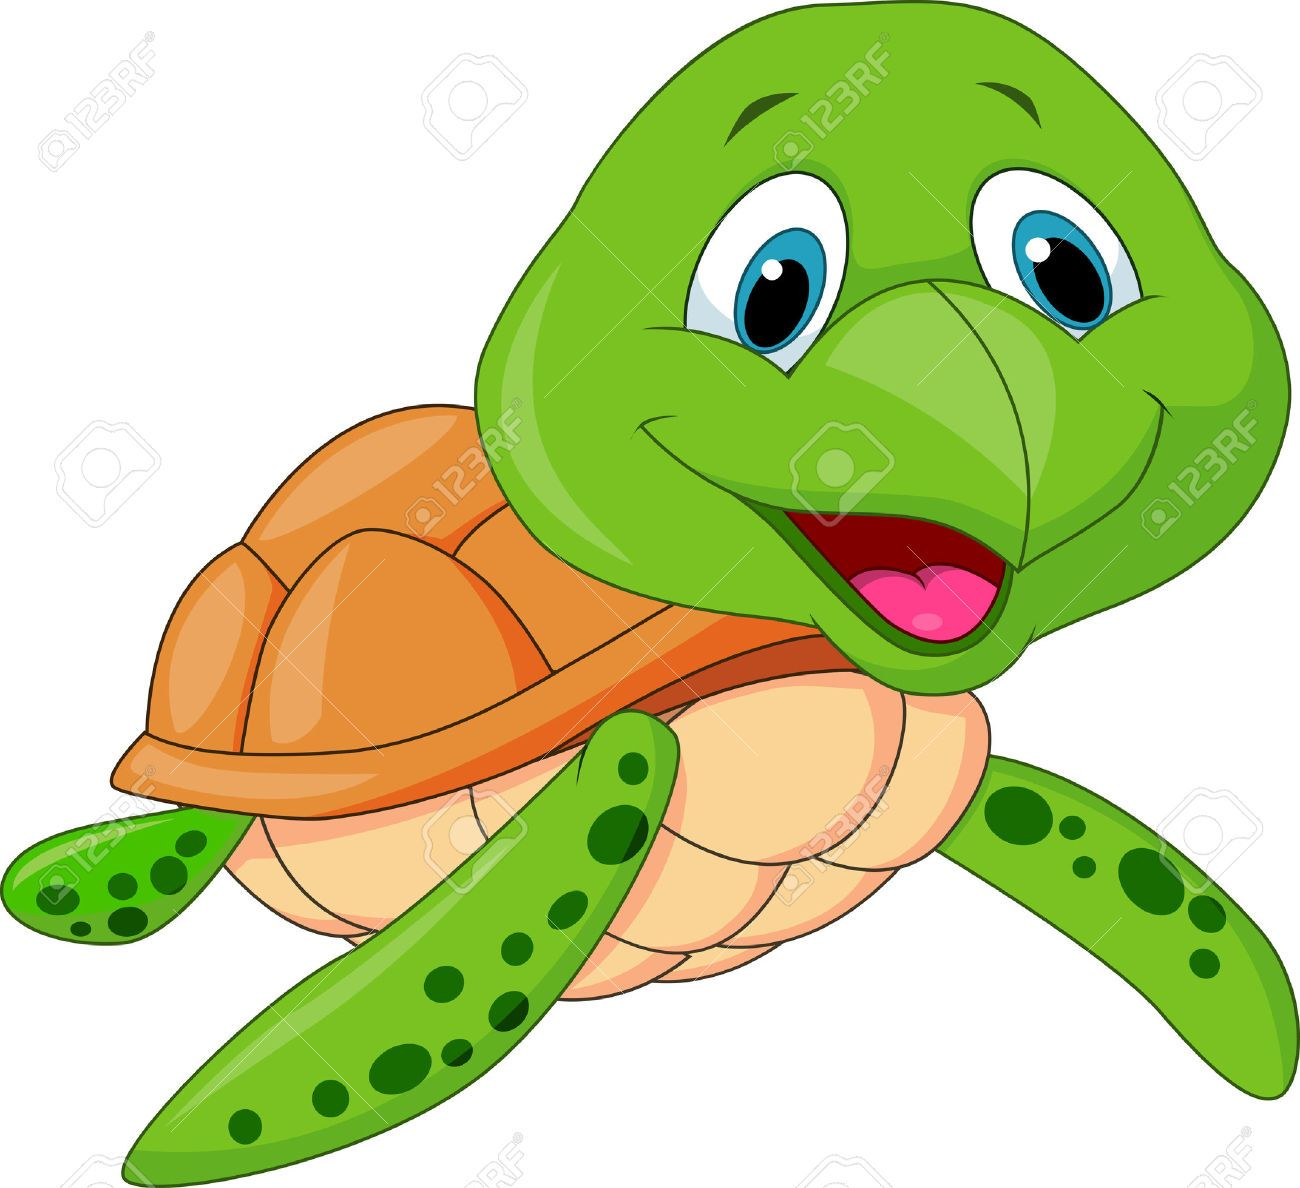 Animated sea turtle clipart graphic Cartoon turtle clipart - Clipart Collection | Hawaiian sea turtle ... graphic